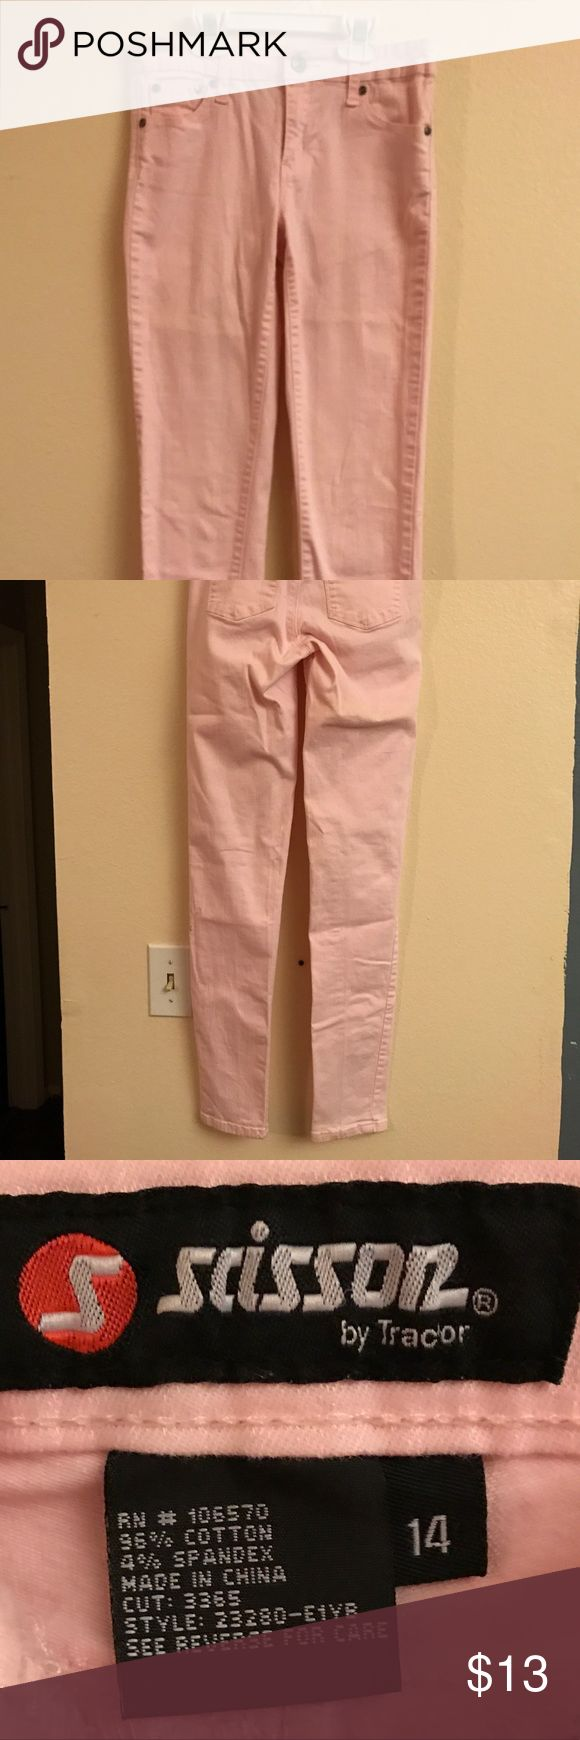 Girls Jeans Pink Girls Scissor Tractor Skinny Jeans from Tilly's. No rips or stains. Tilly's Bottoms Jeans